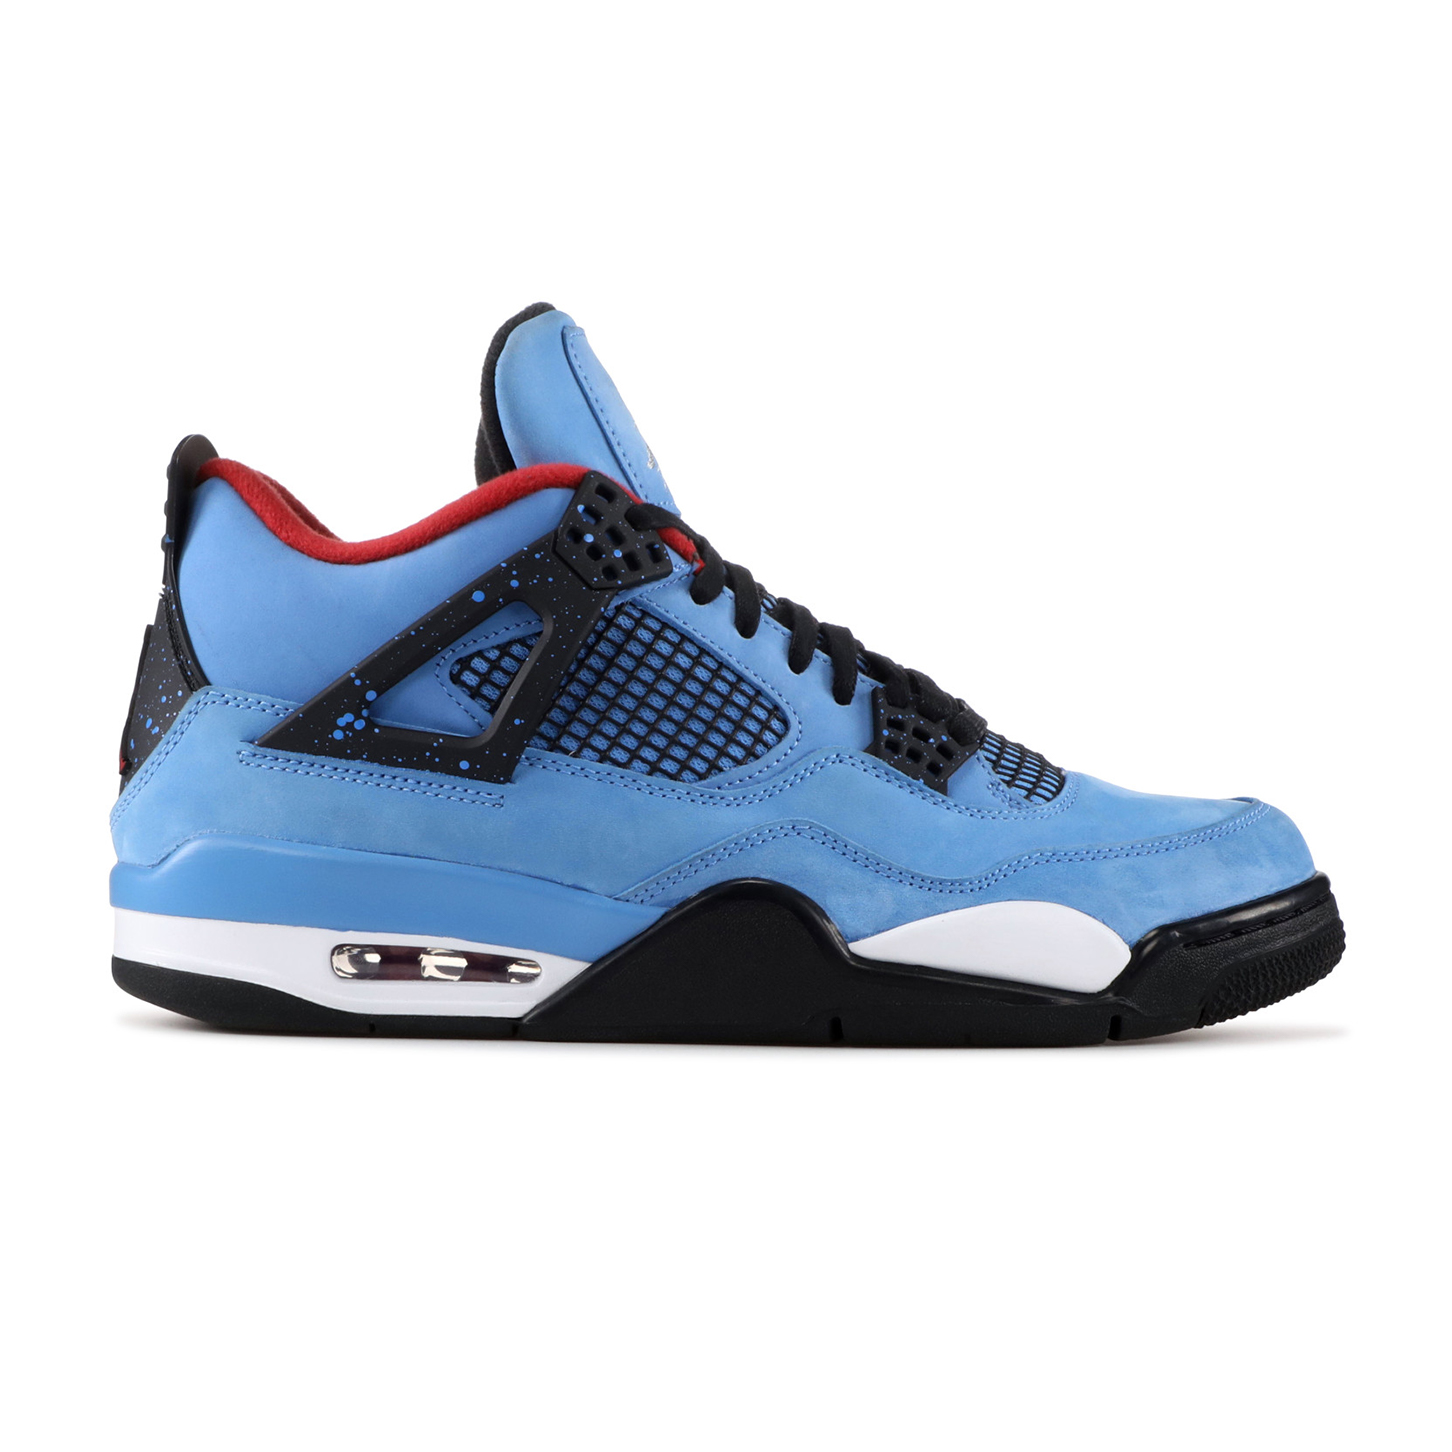 Jordan-4-Retro-Travis-Scott-Cactus-Jack